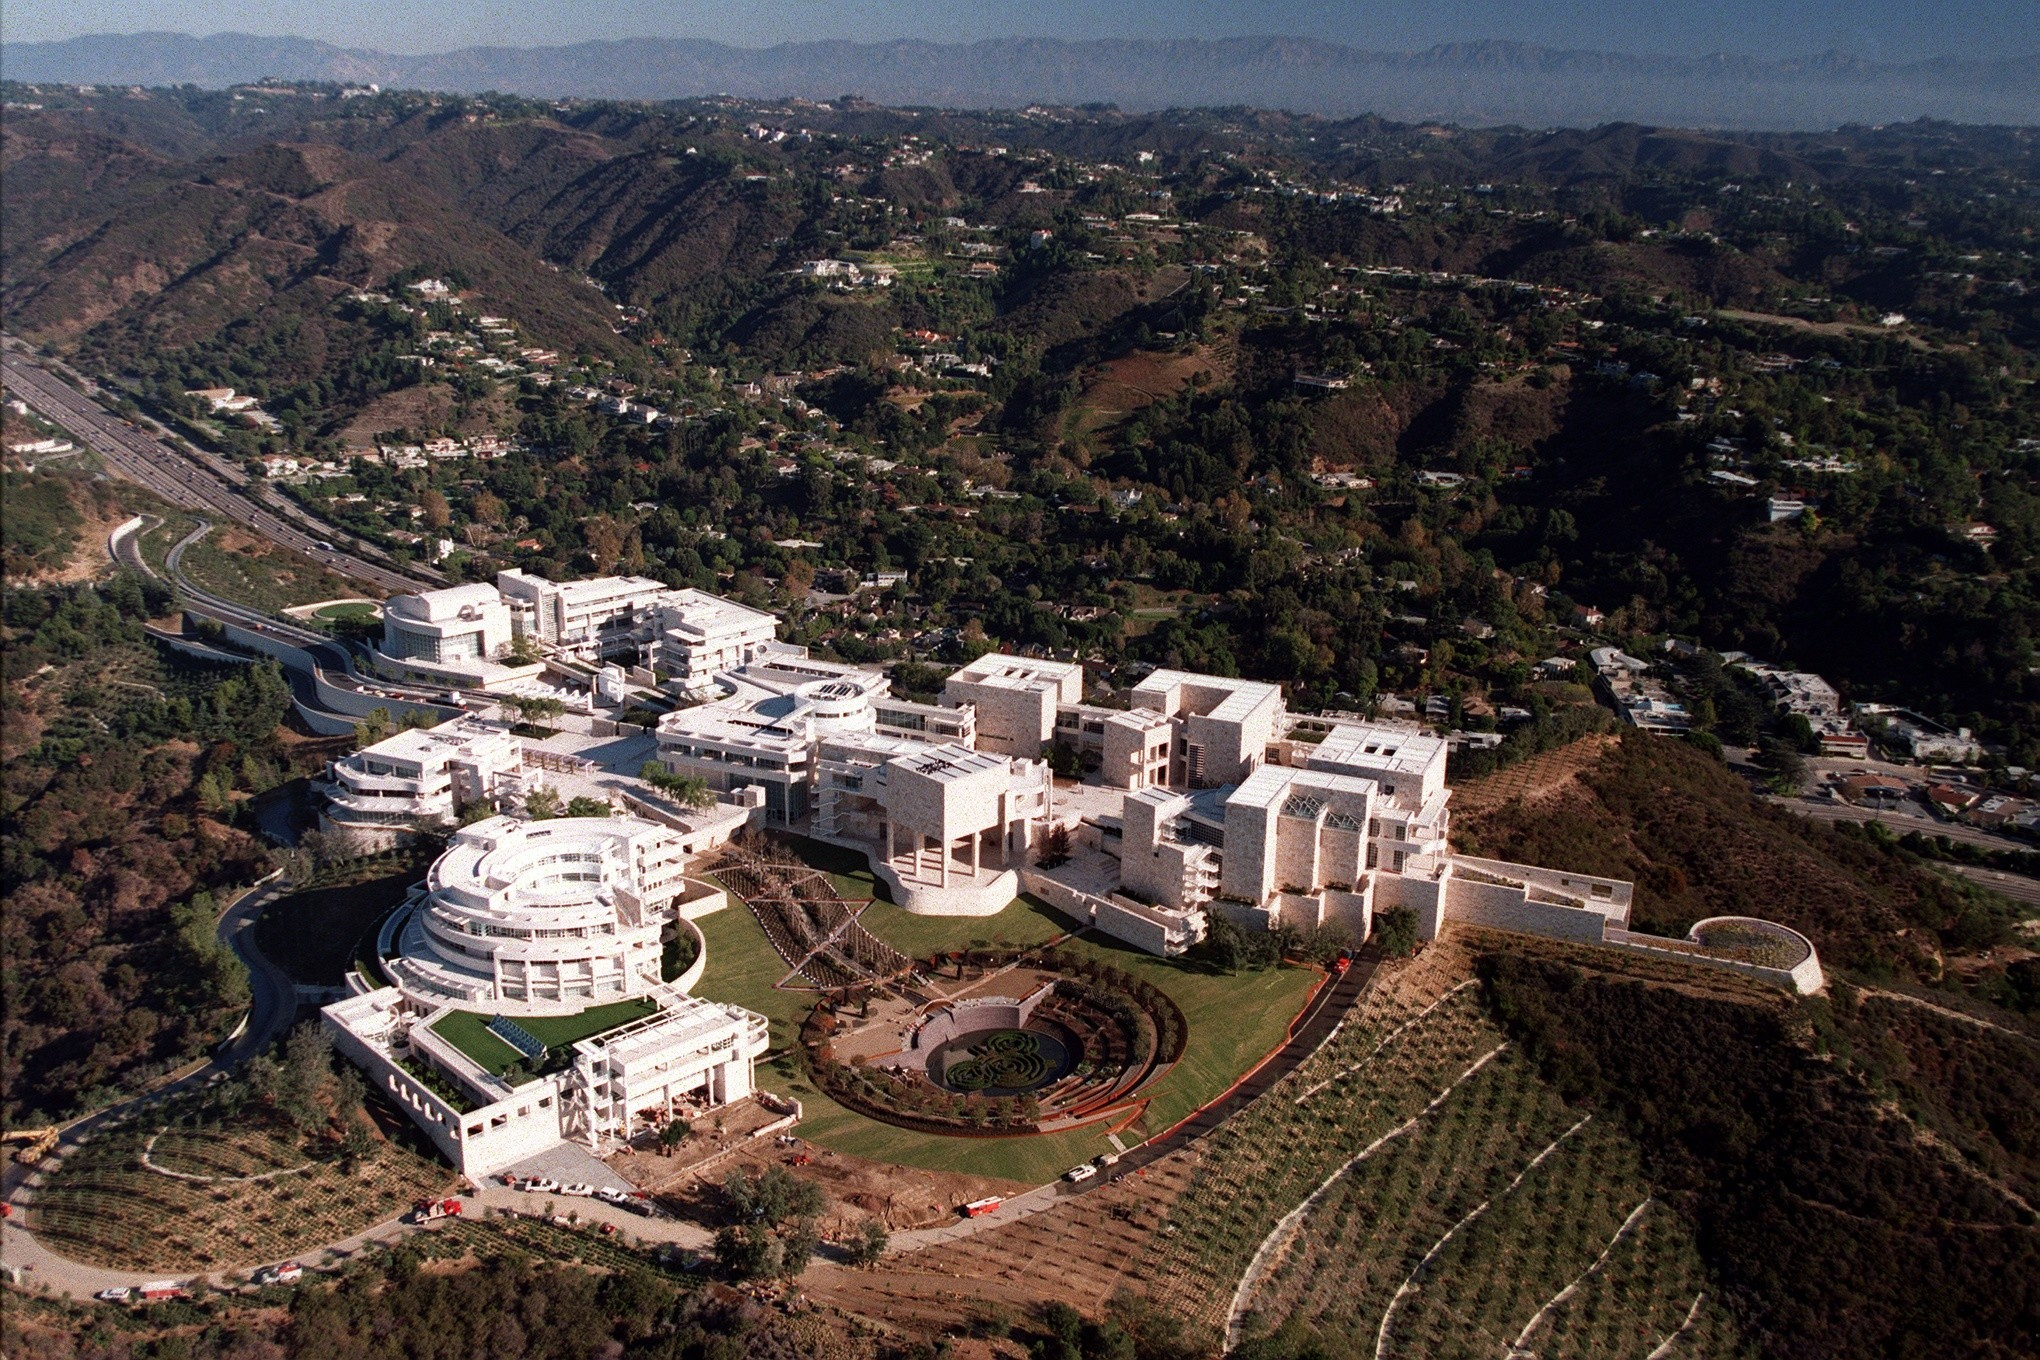 Richard Meier on the Getty Center as it turns 20 - Los Angeles Times